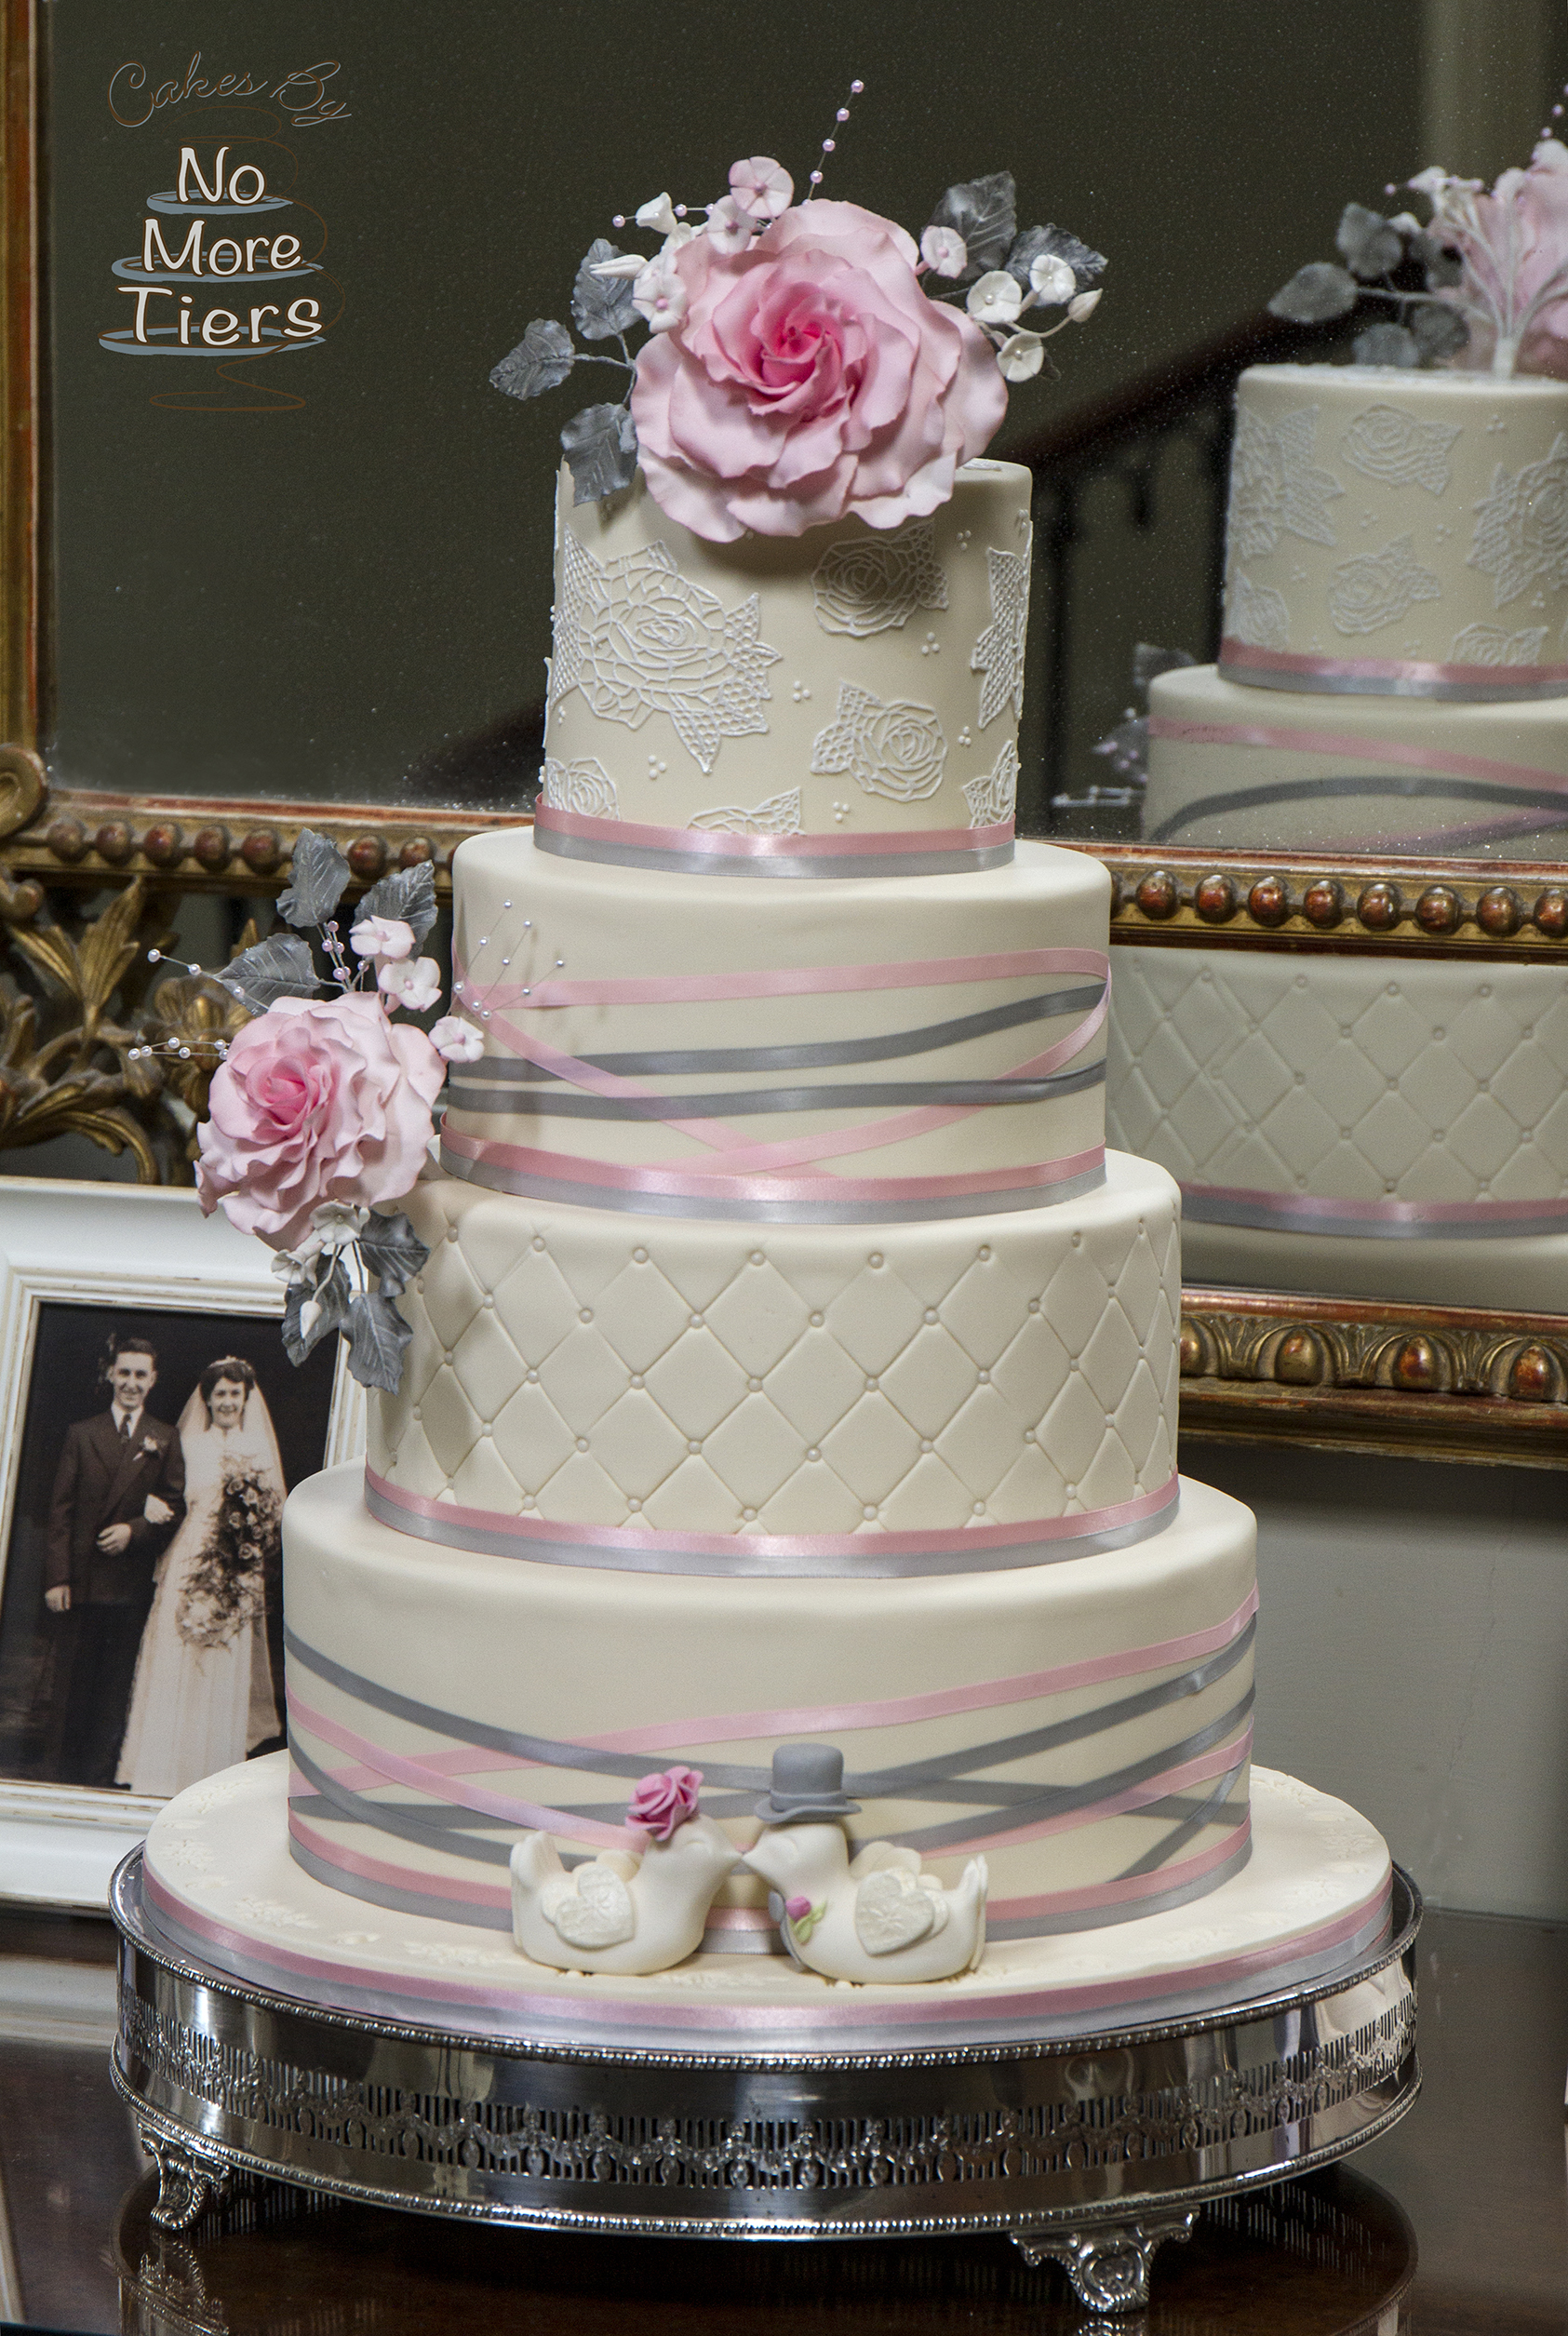 White & pink wedding